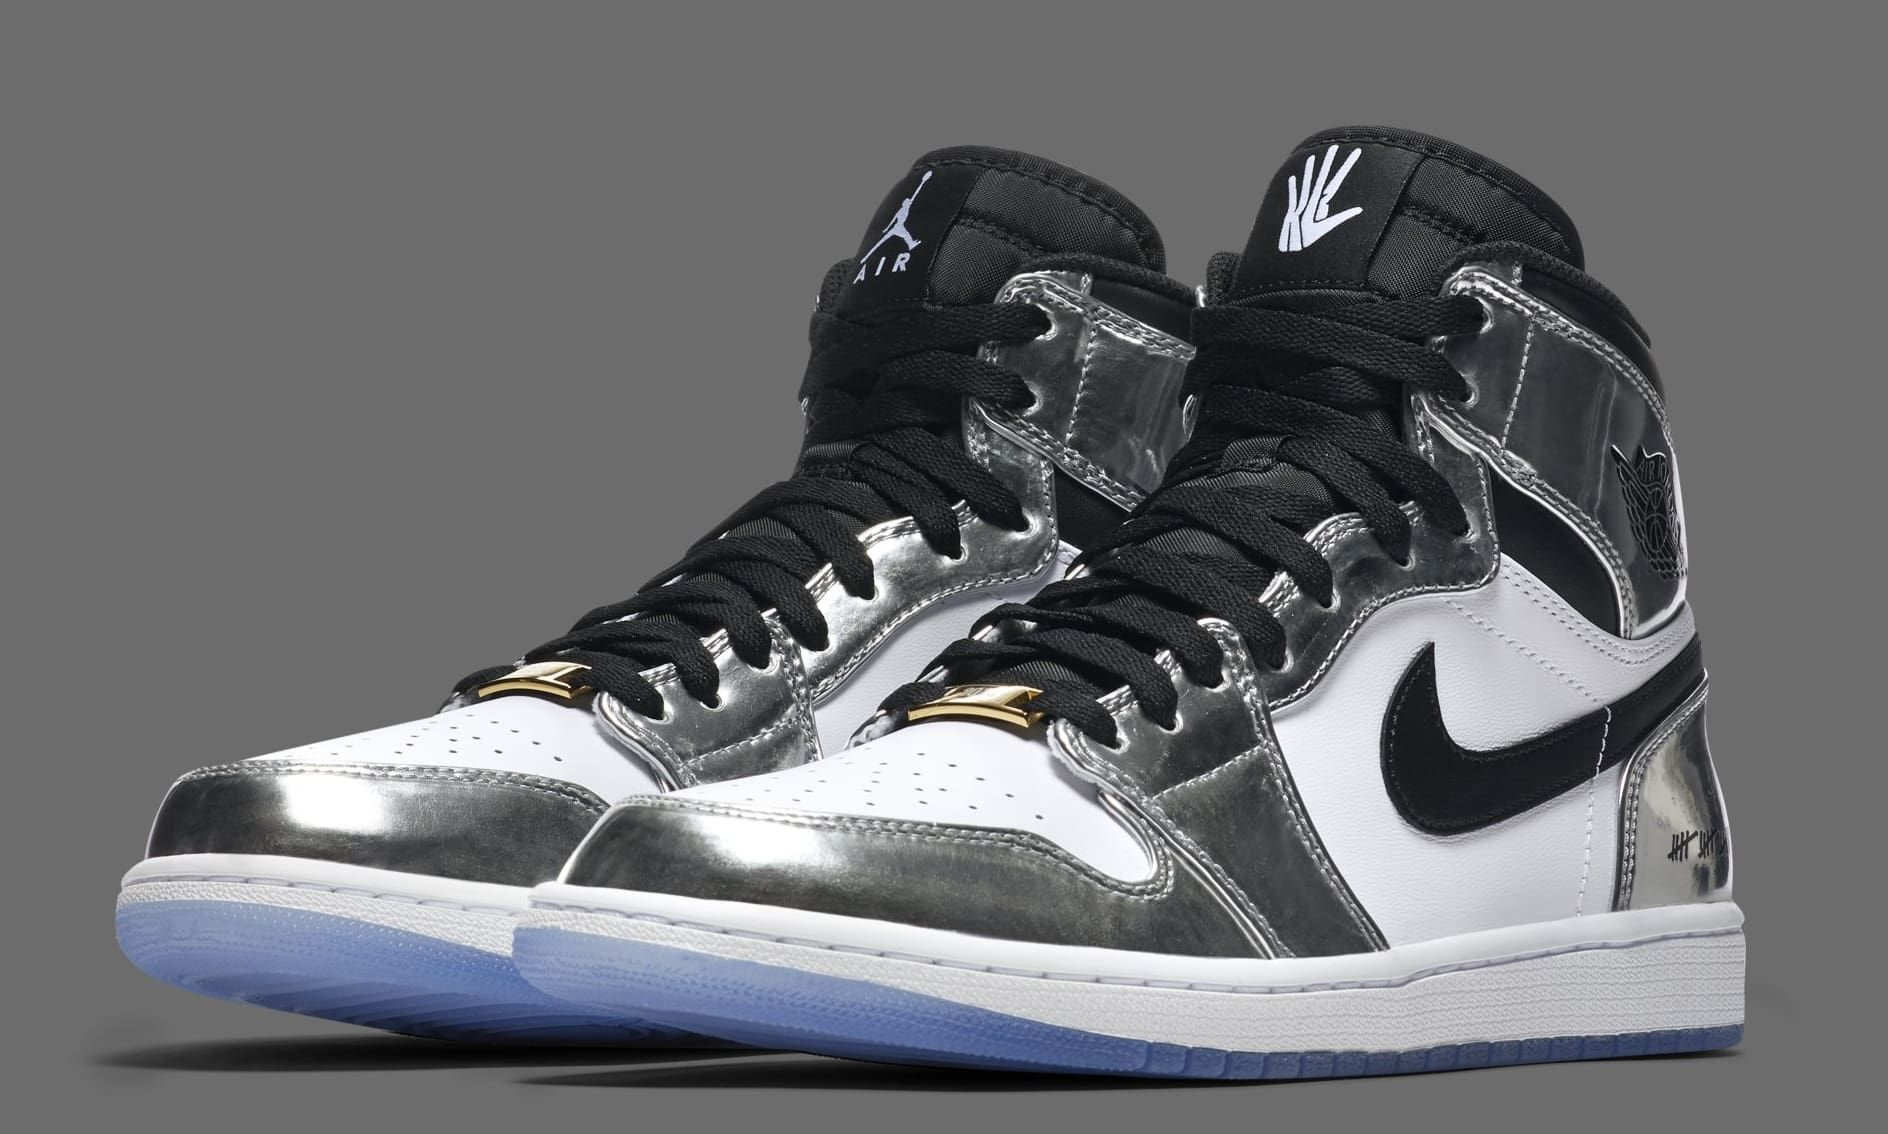 0910856732ace4 Air Jordan 1 Retro  Pass the Torch  Champions Think 16 AQ7476-016 Release  Date